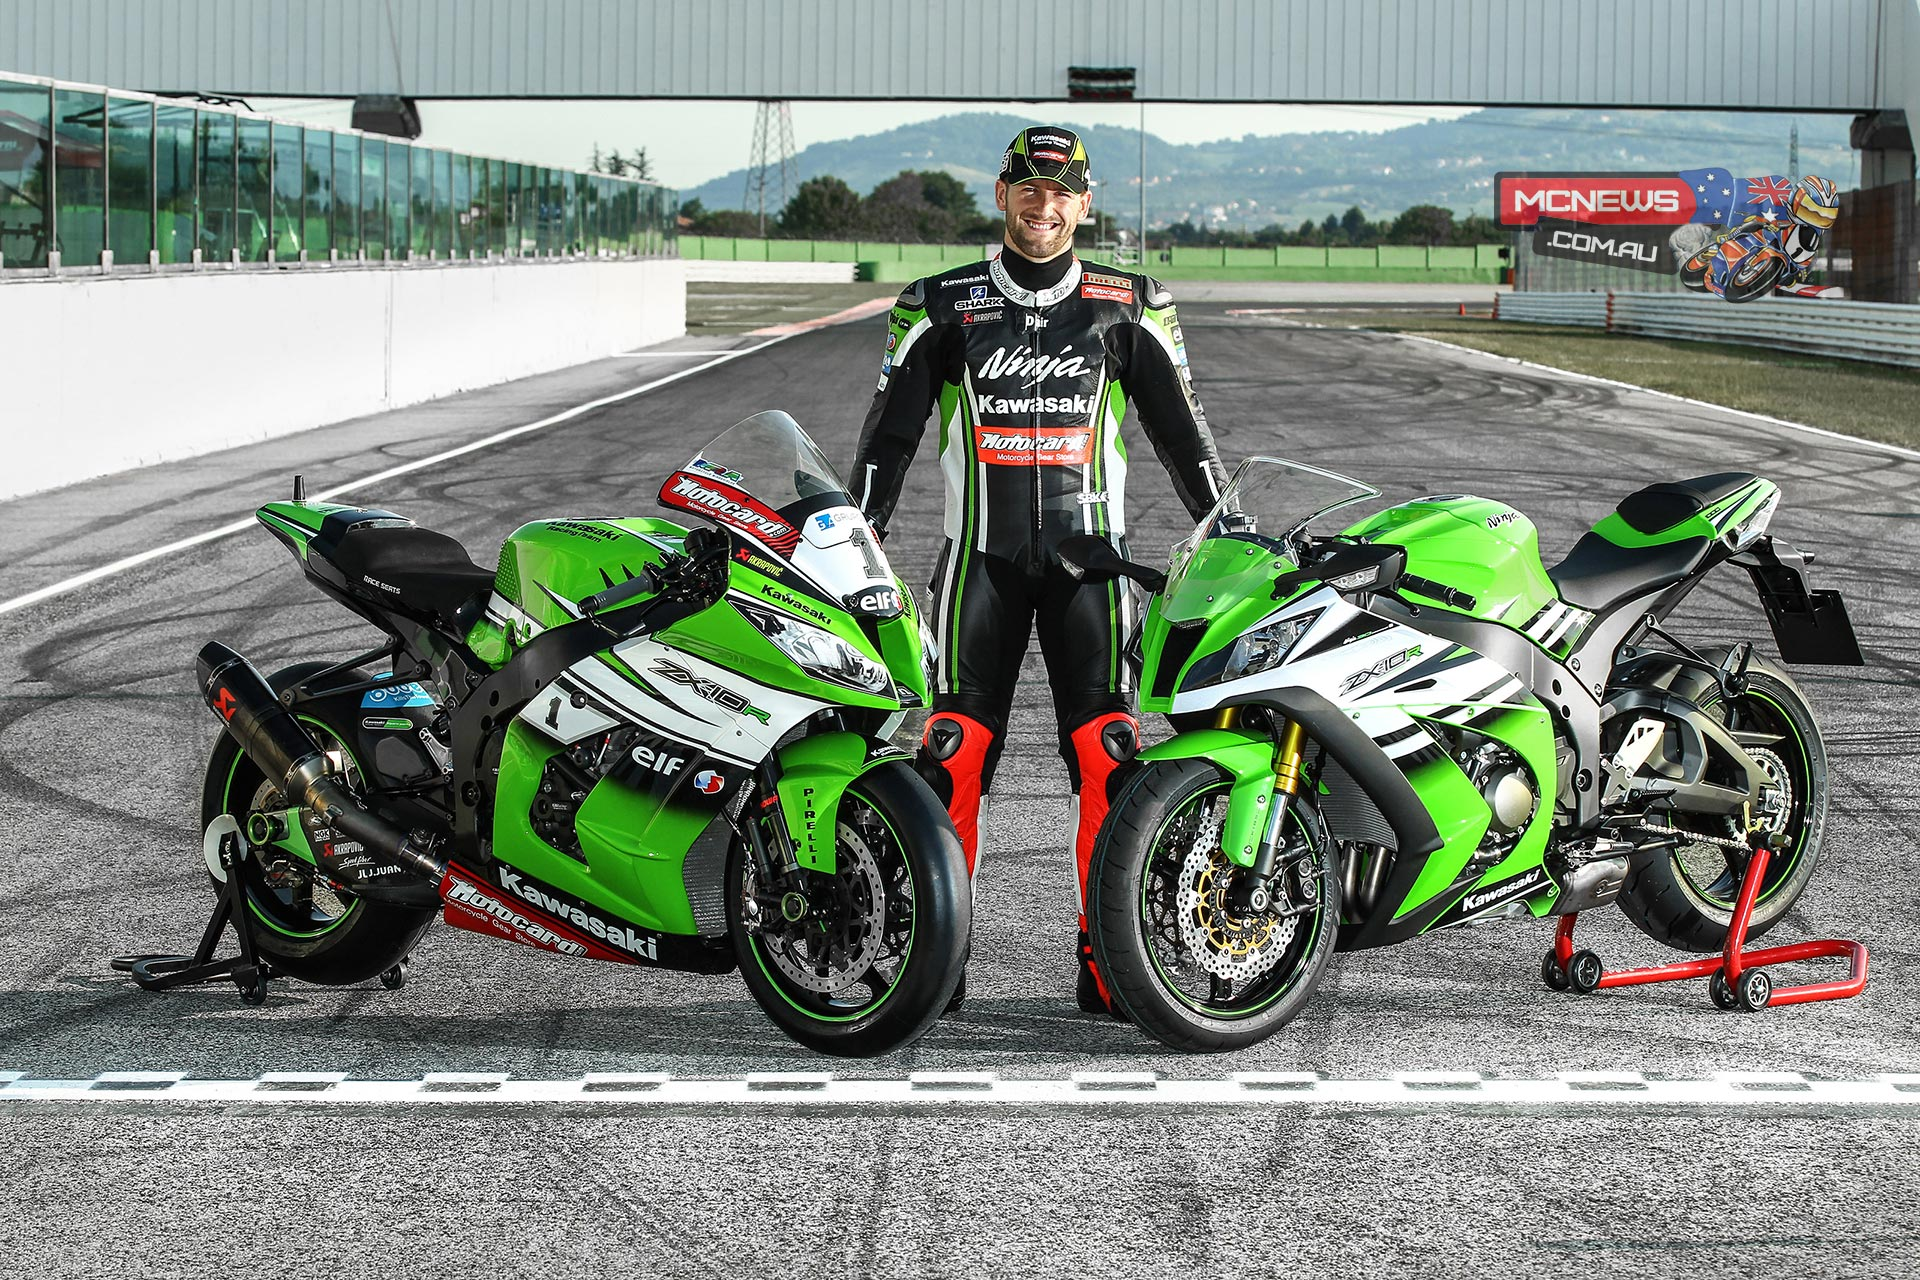 2015 30th Anniversary Ninja ZX-10R ABS